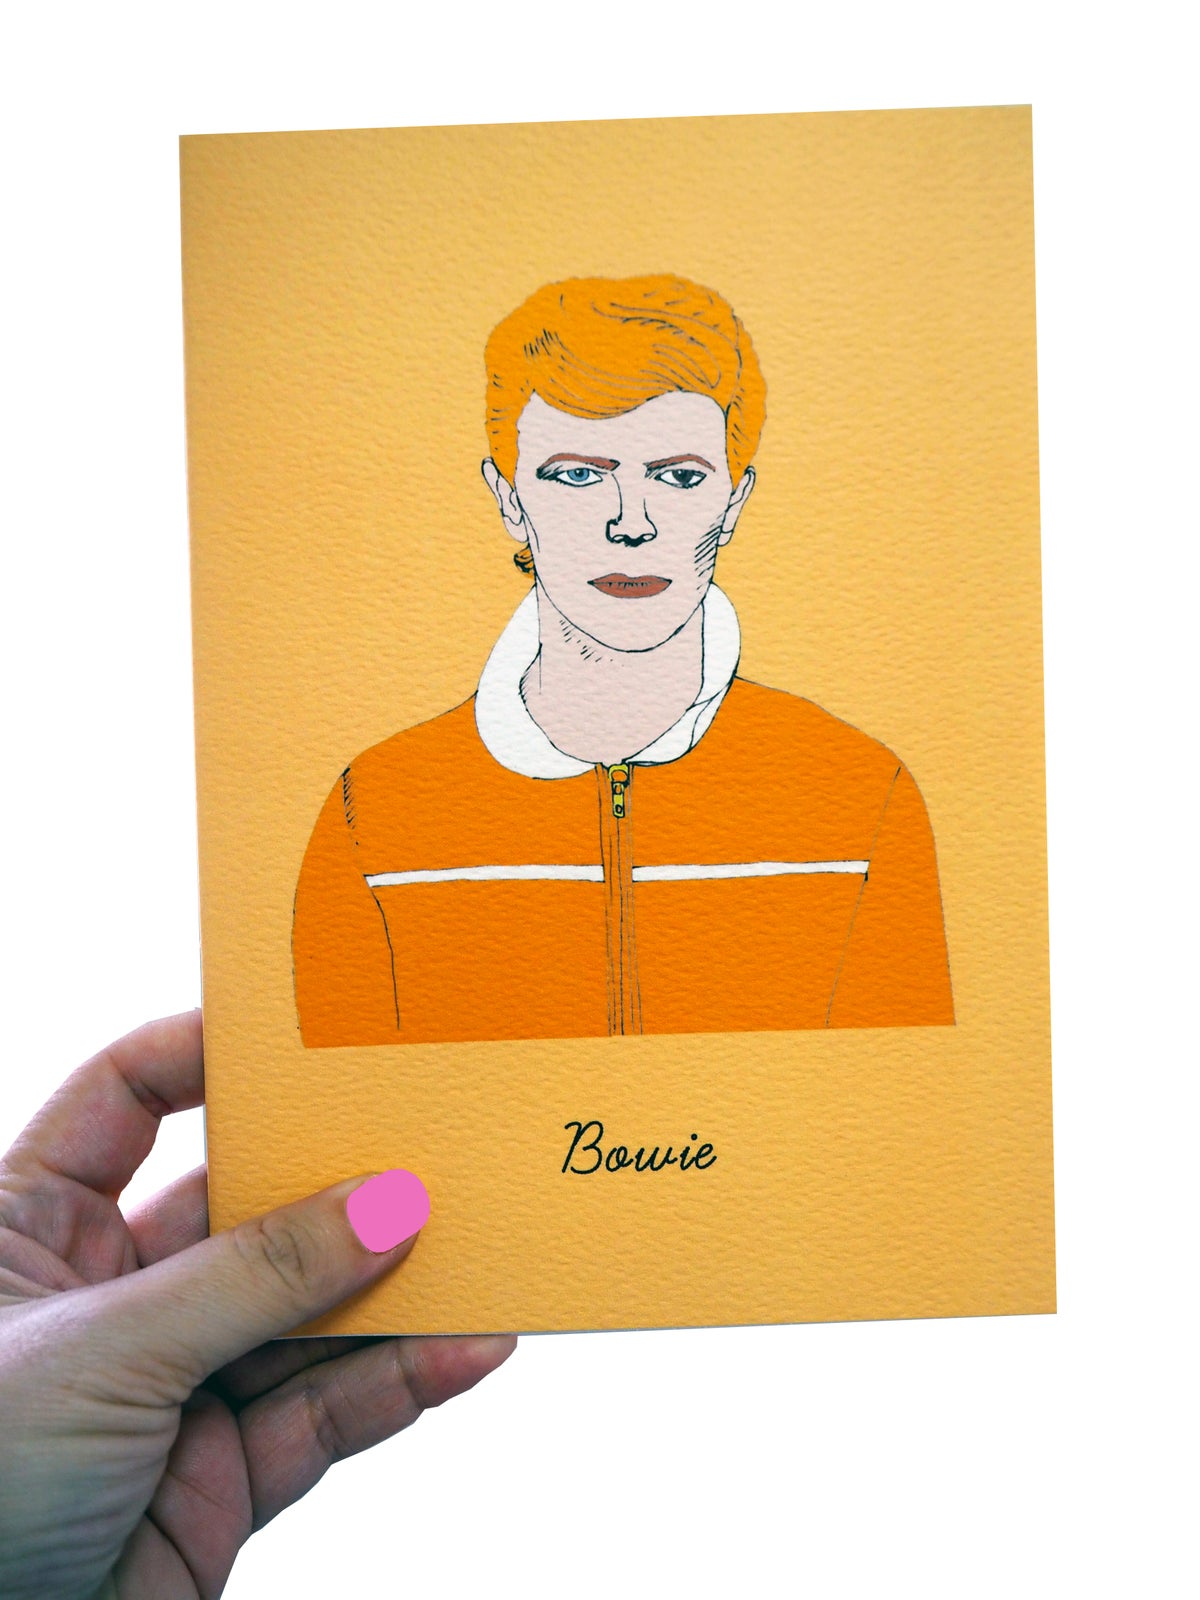 David Bowie A5 or A6 Notebook